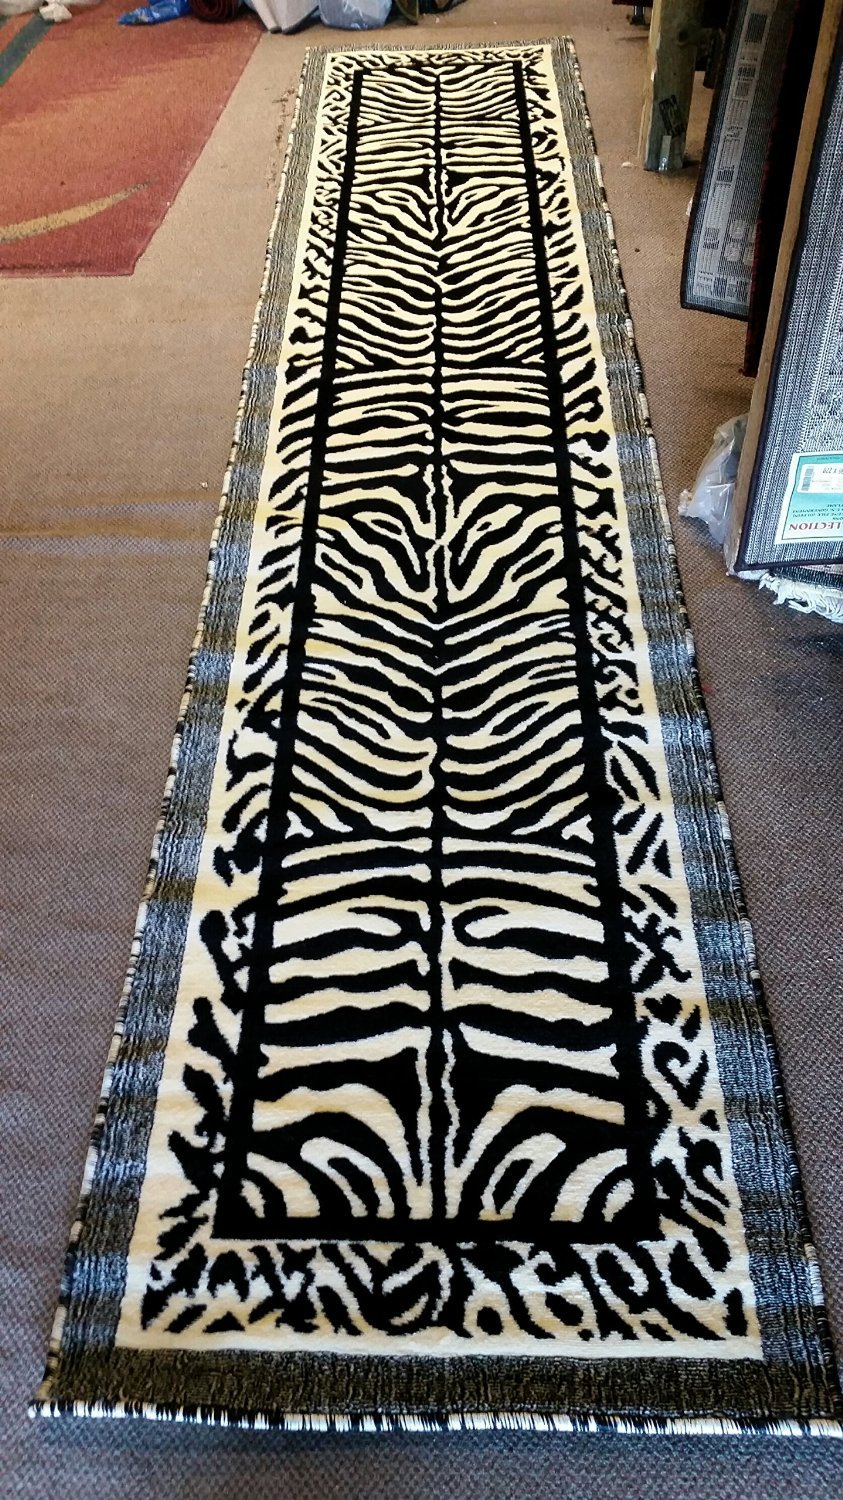 Kingdom Zebra Animal Skin Print Runner Rug Black & Off White Design D142 (2ft.x7ft.)